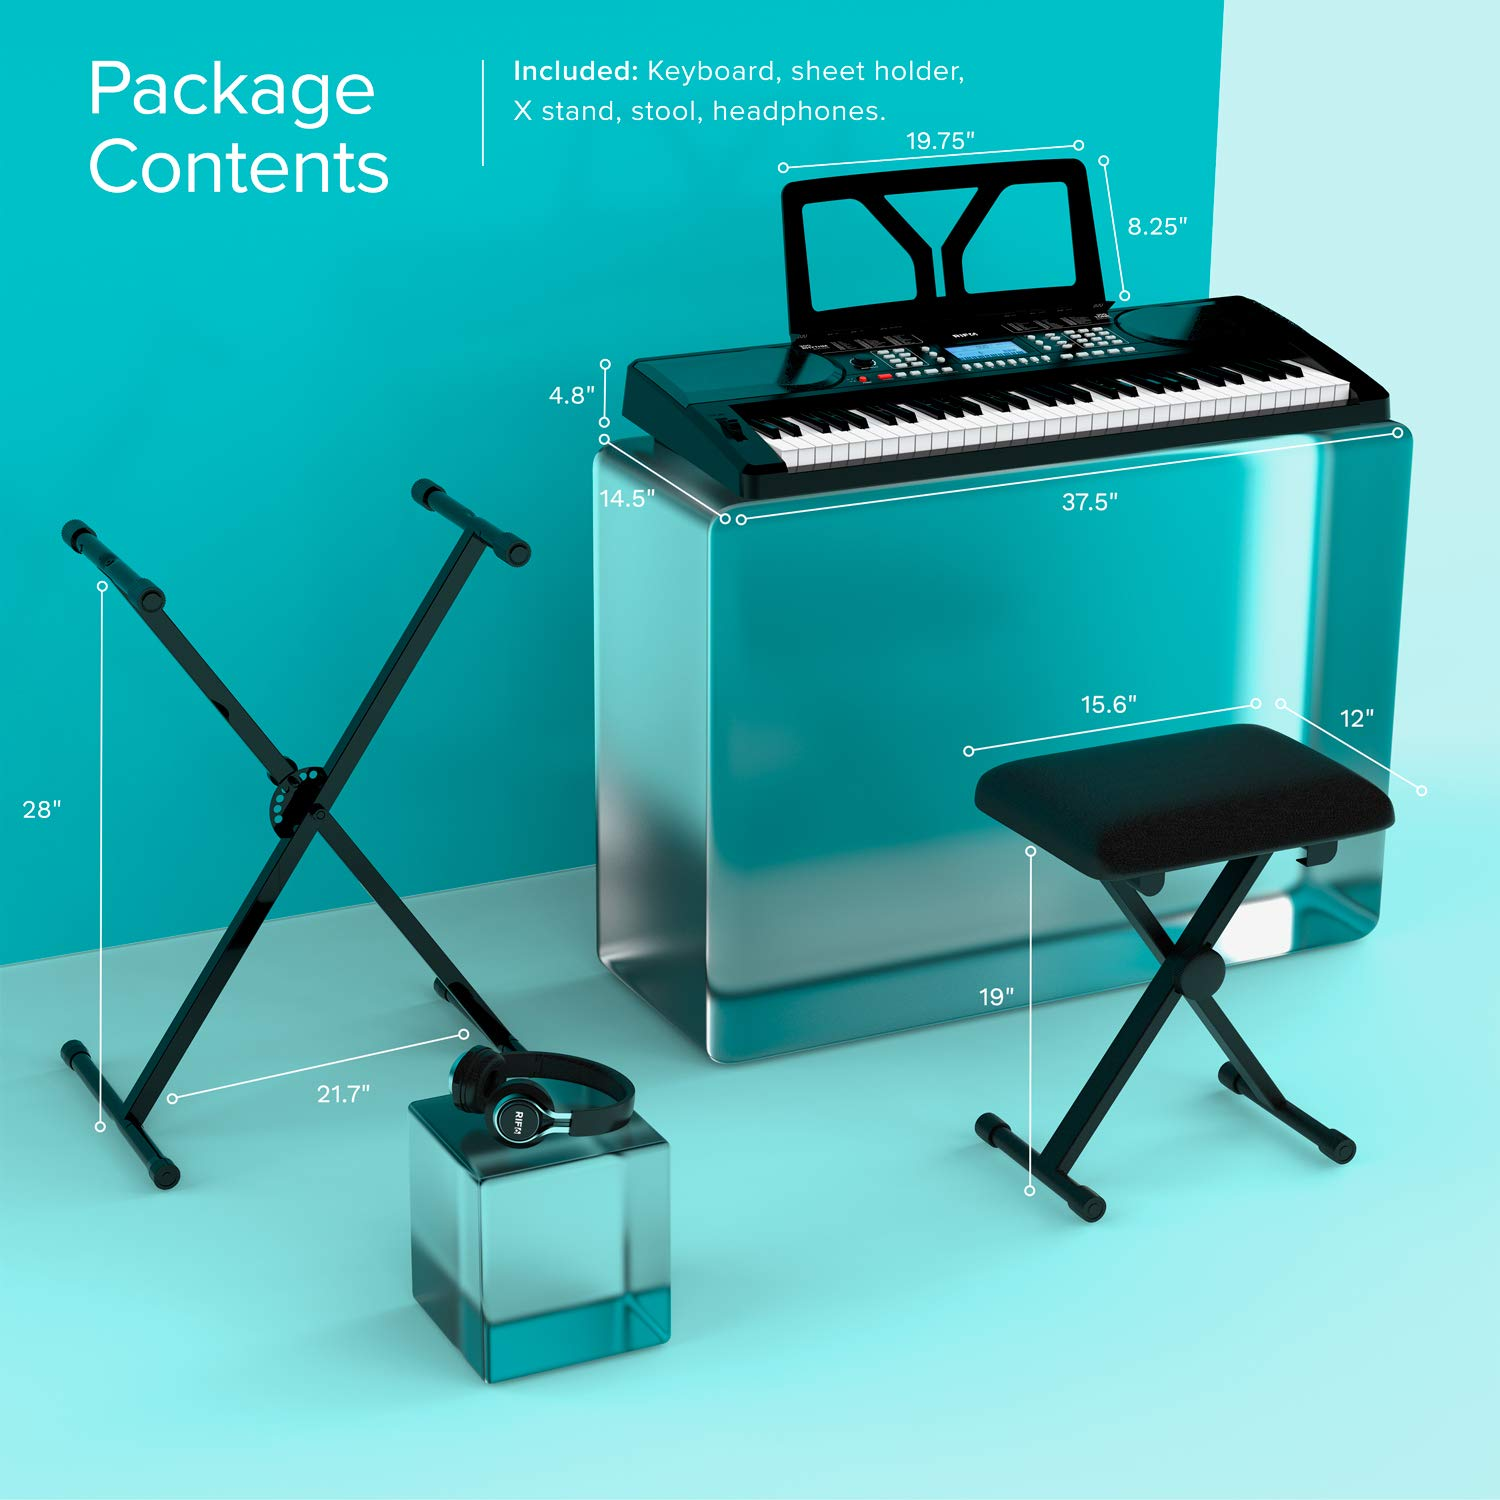 RIF6 Electric 61 Key Piano Keyboard - with Over Ear Headphones, Music Stand, Digital LCD Display, Teaching Modes and Adjustable Stool - Electronic Musical Instruments Starter Set for Kids and Adults by RIF6 (Image #2)